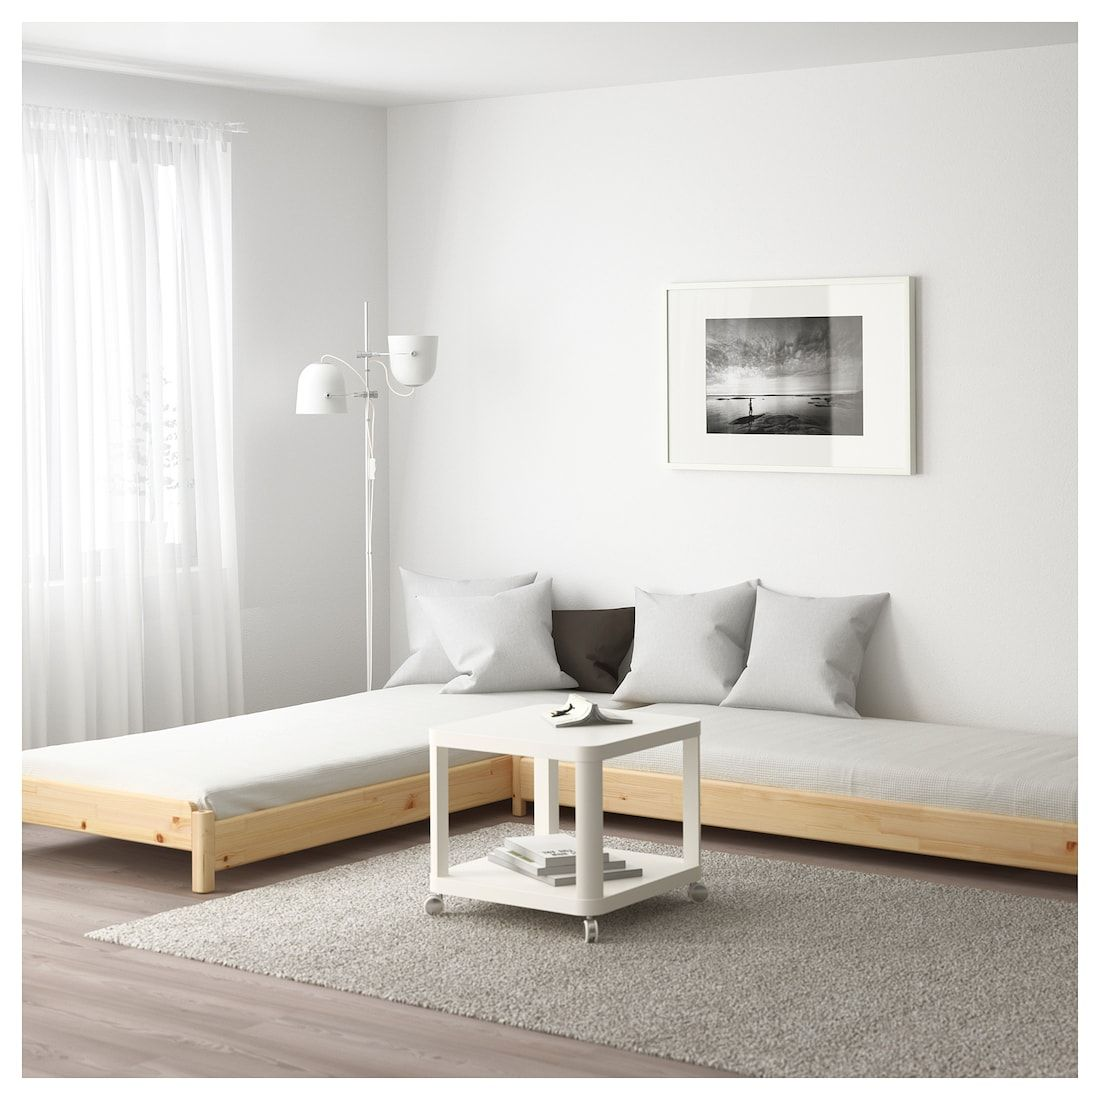 Utaker Stackable Bed With 2 Mattresses Pine Meistervik In 2020 Ikea Bed Spare Bed Ikea